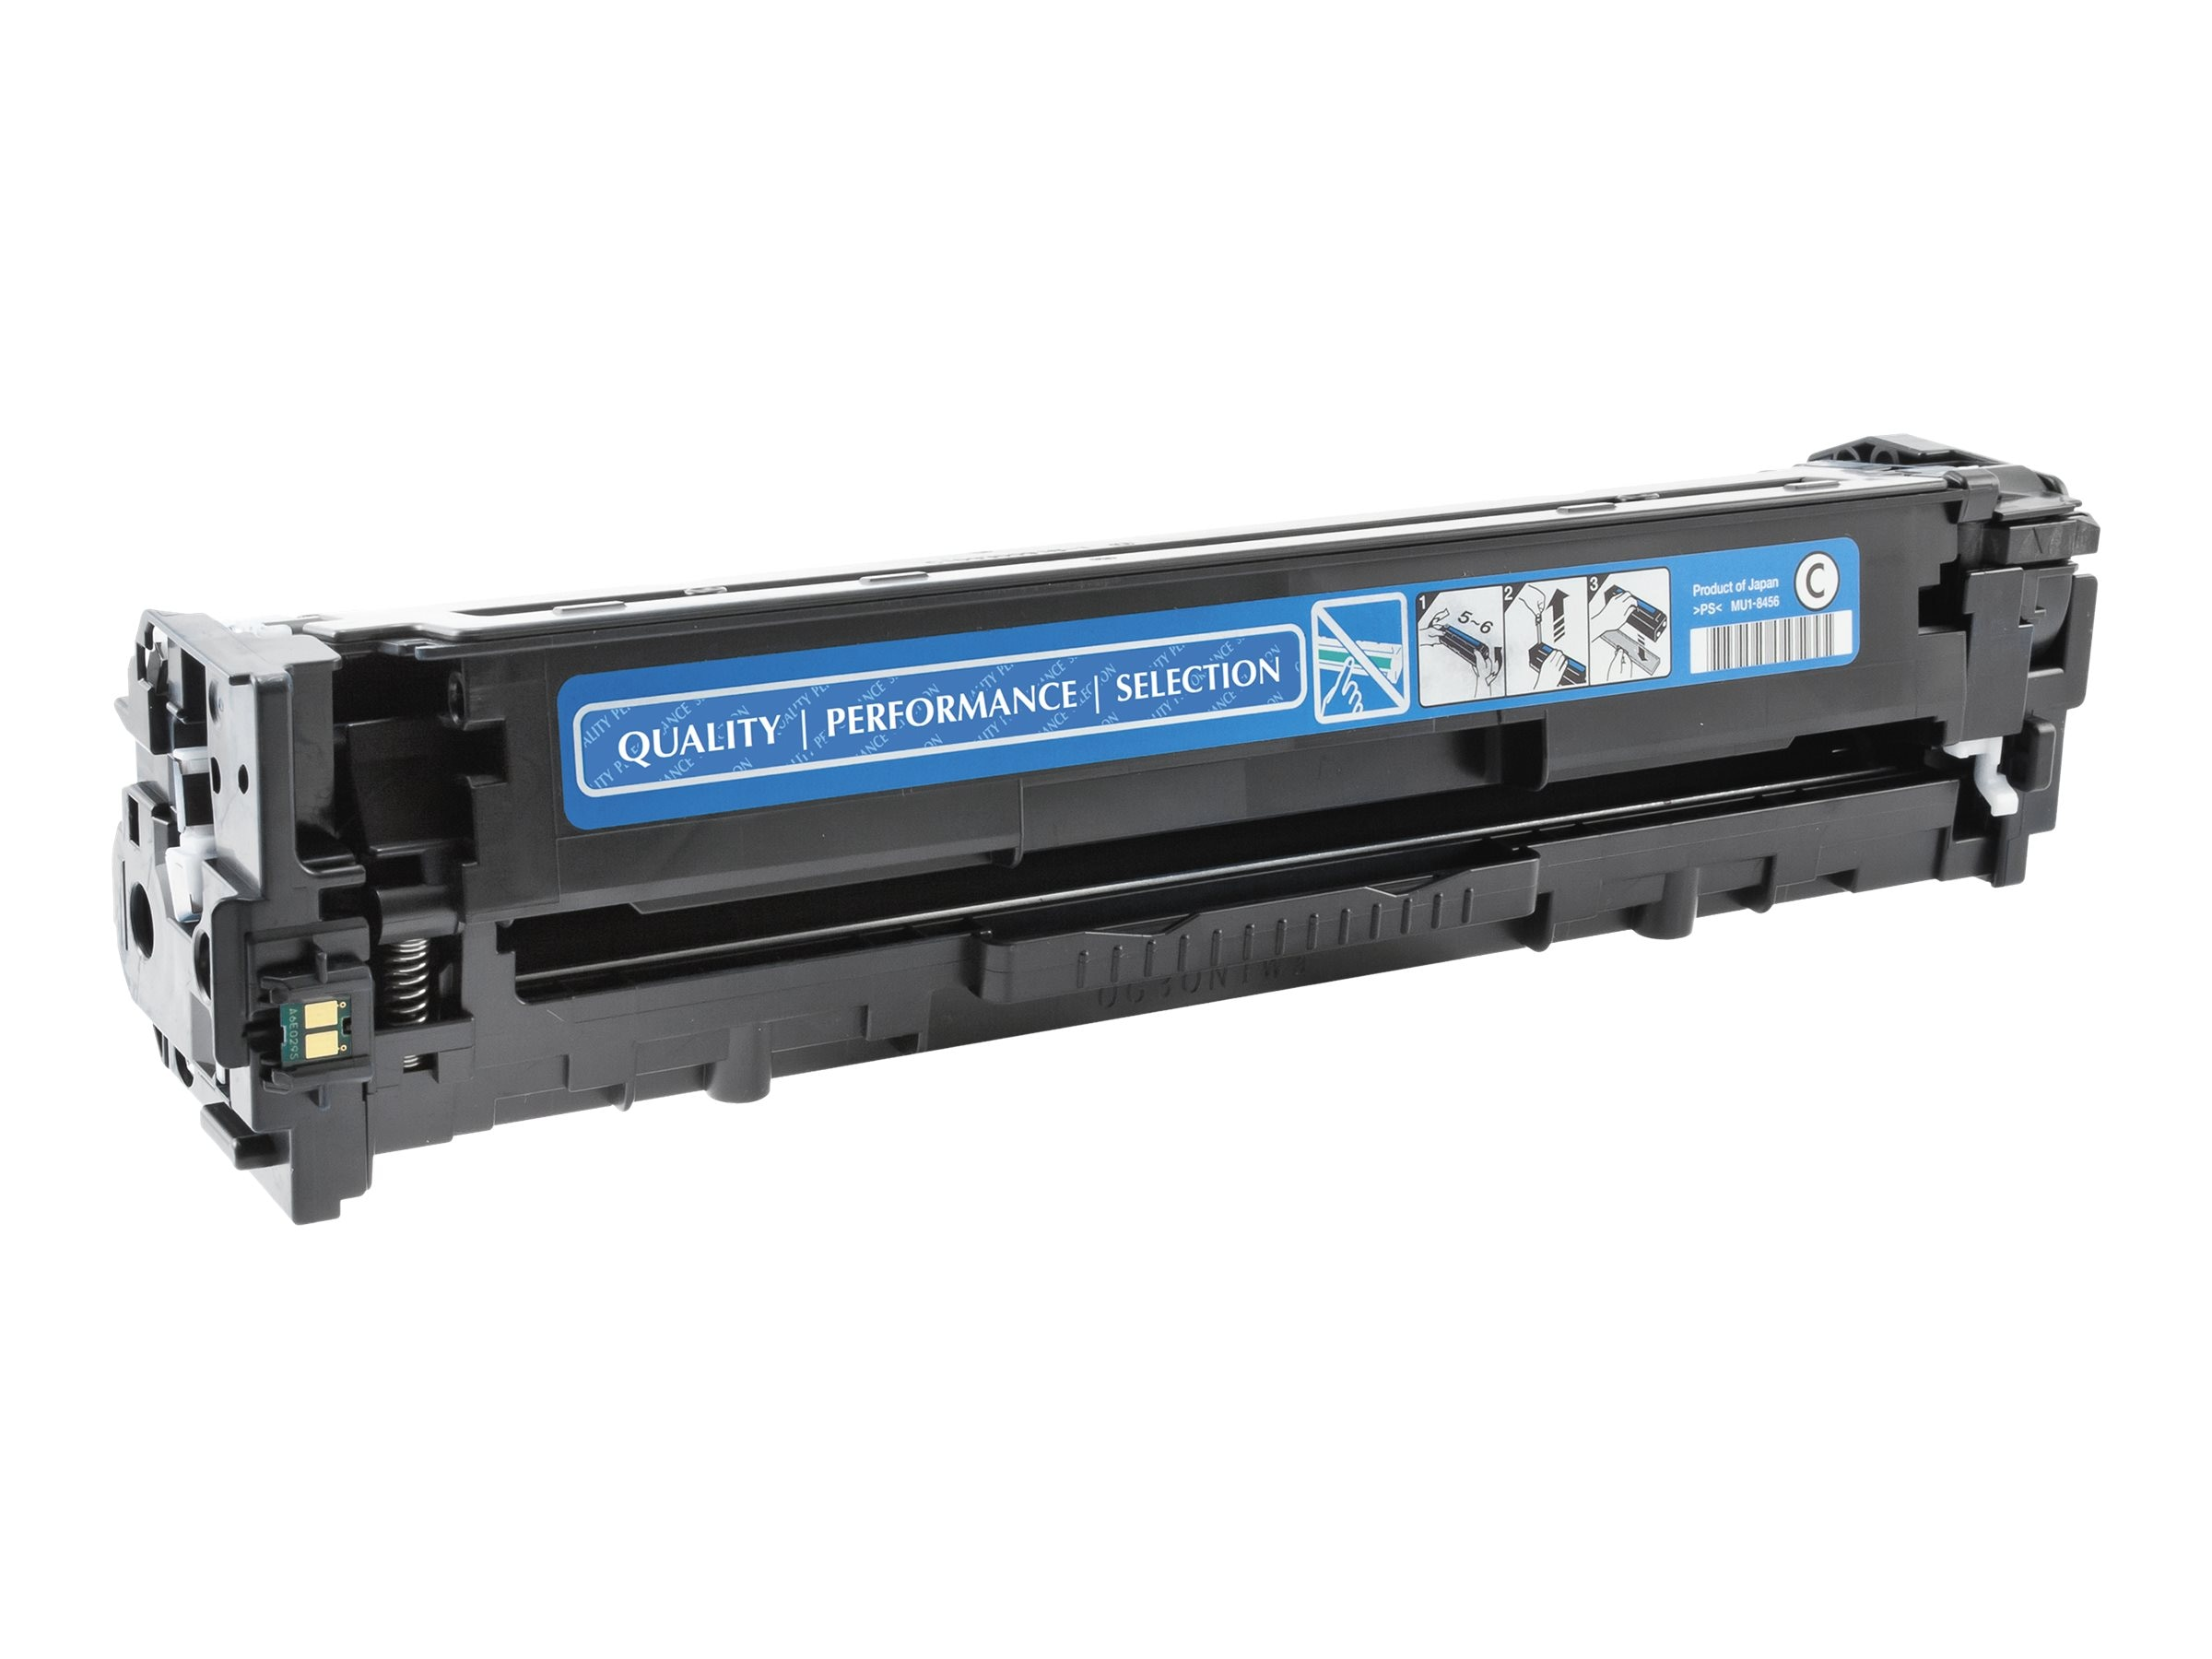 V7 CE321AG Cyan Toner Cartridge for HP Color LaserJet Pro CM1415 & CP1525, V71415C